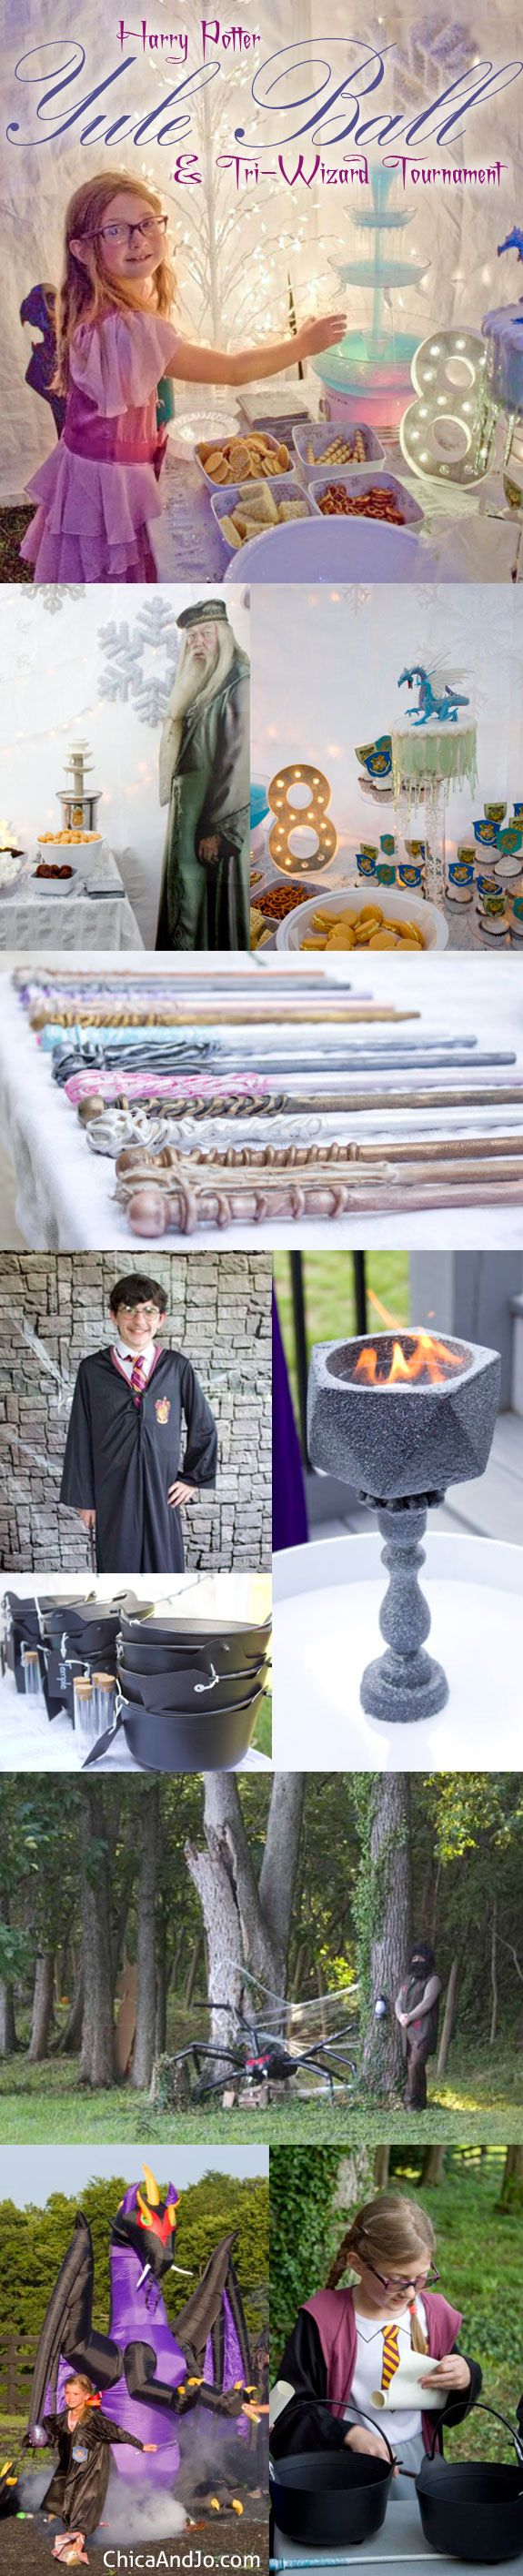 Harry Potter Yule Ball and Tri-Wizard Tournament Party ideas, decorations, games, wands, costumes, and more! #Harrypotter #harrypotterparty #yuleball